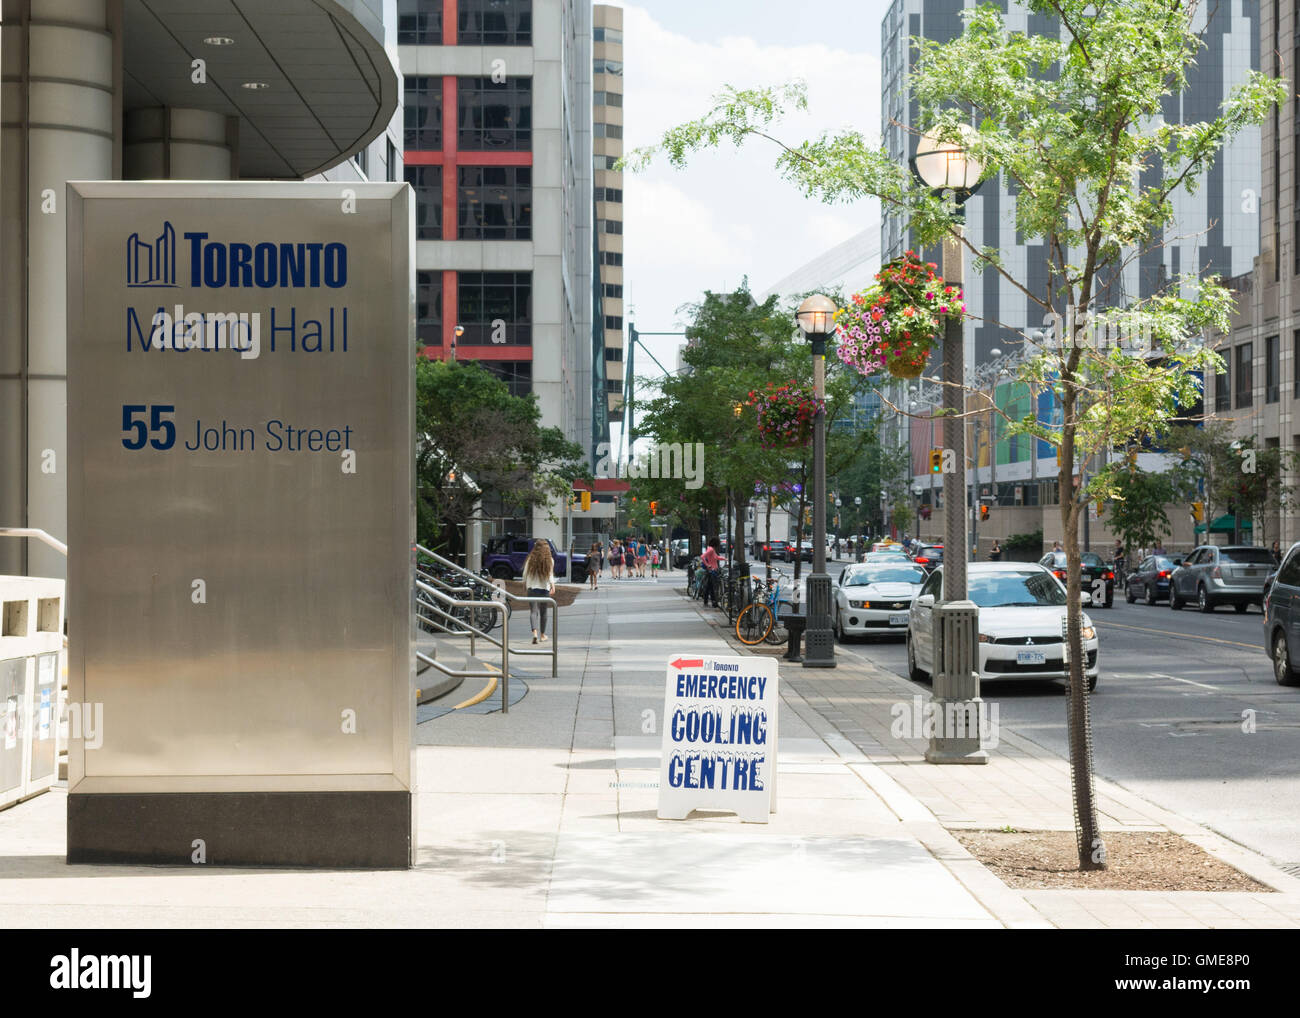 Emergency cooling centre sign outside Toronto Metro Hall, Toronto - Stock Image